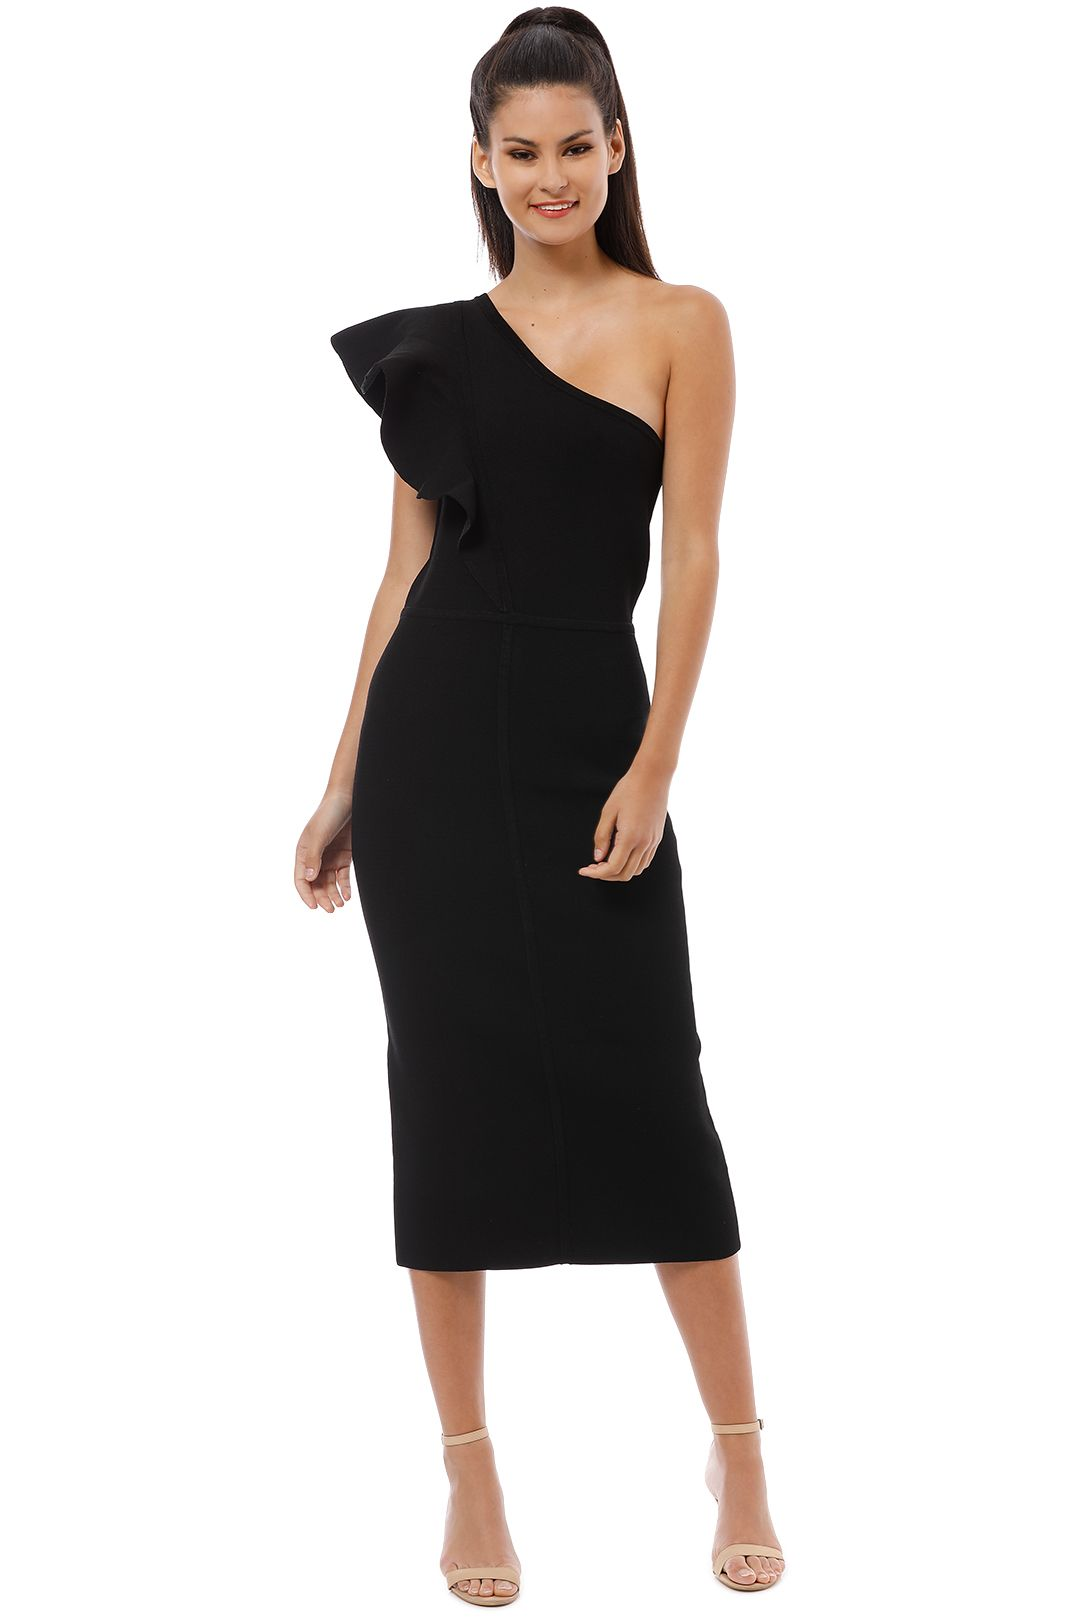 Ginger and Smart - Anchor One Shoulder Dress - Black - Front